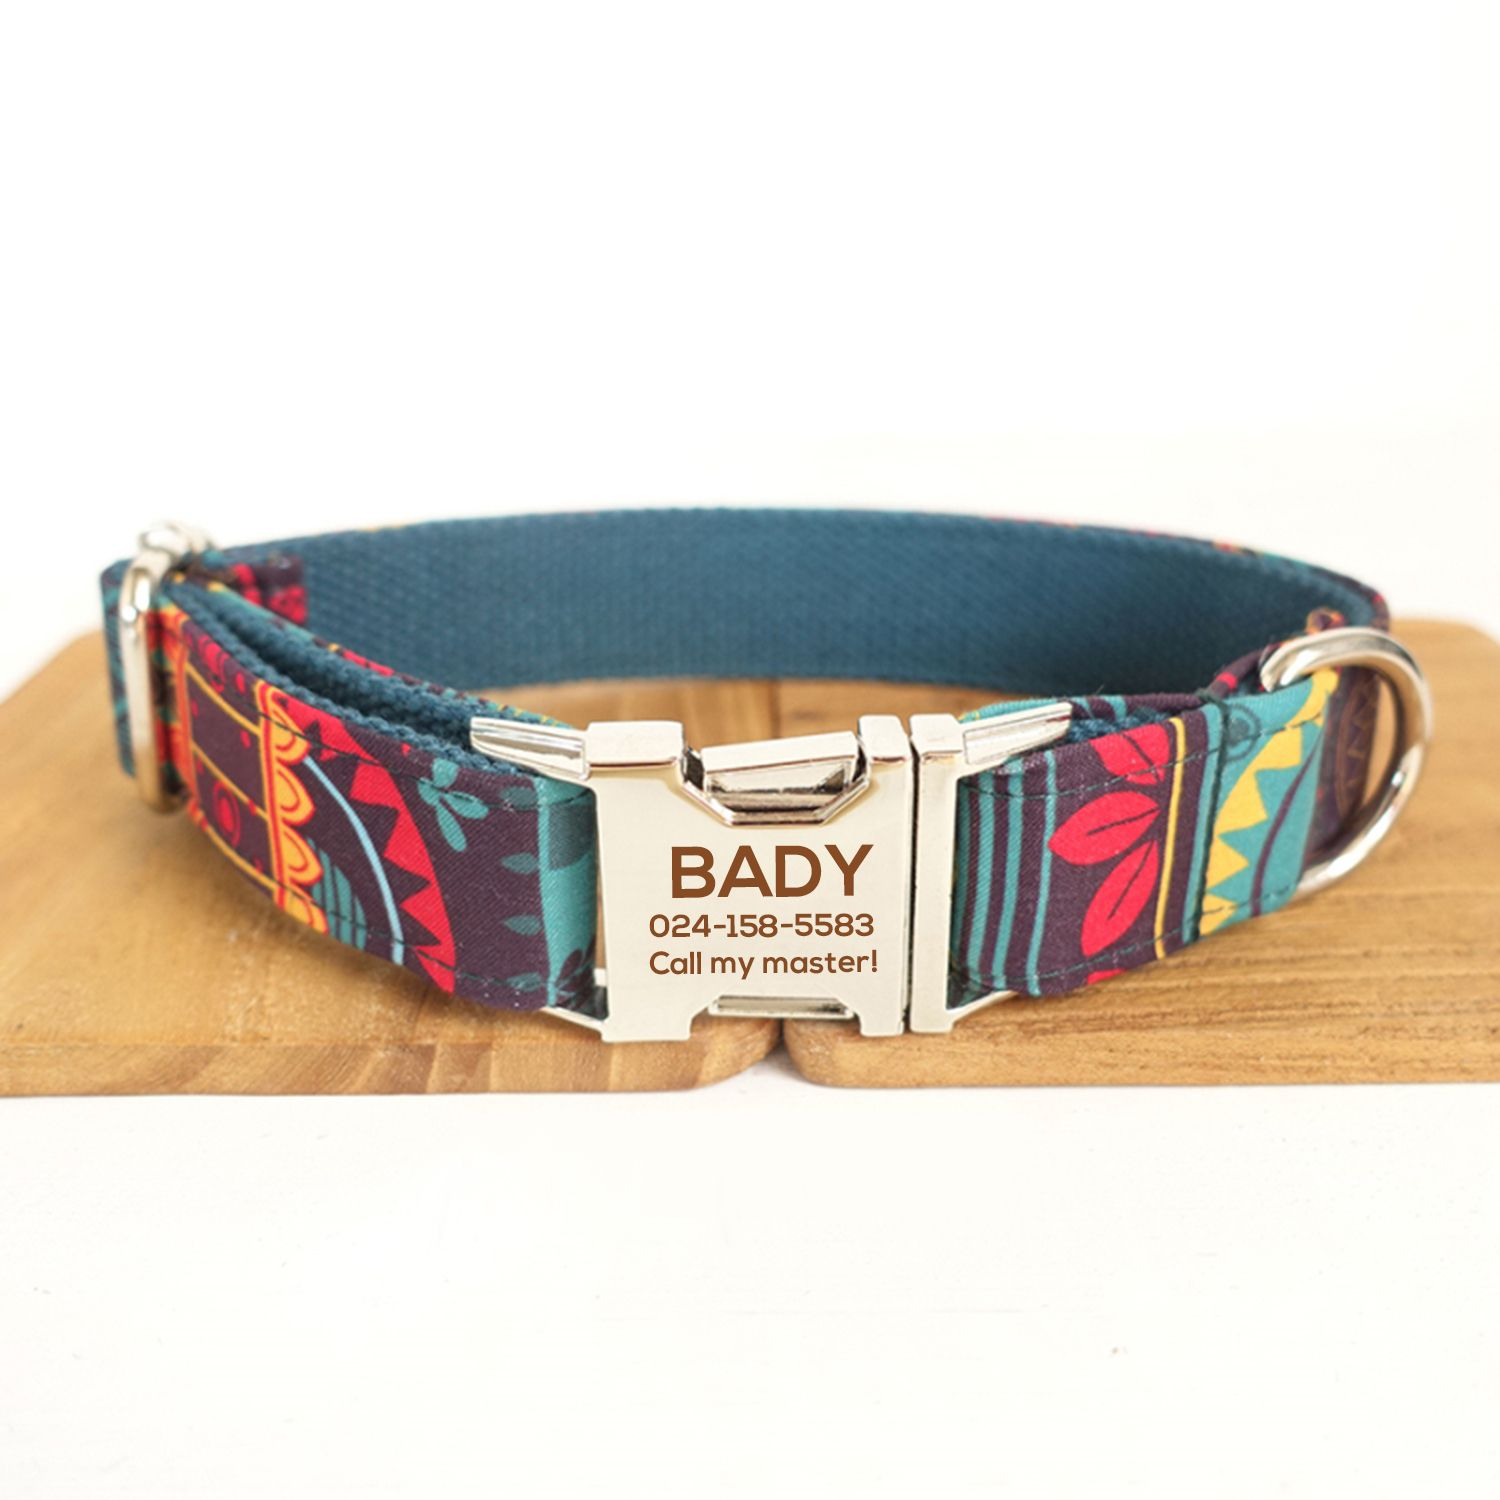 9f529797ed5a Ethnic Style Dog Collar - Custom Dog Collar - Printed Dog Collar and Laser  Engraved Your Dog's Name -DIY Dog Collar- Personalized Dog Collar